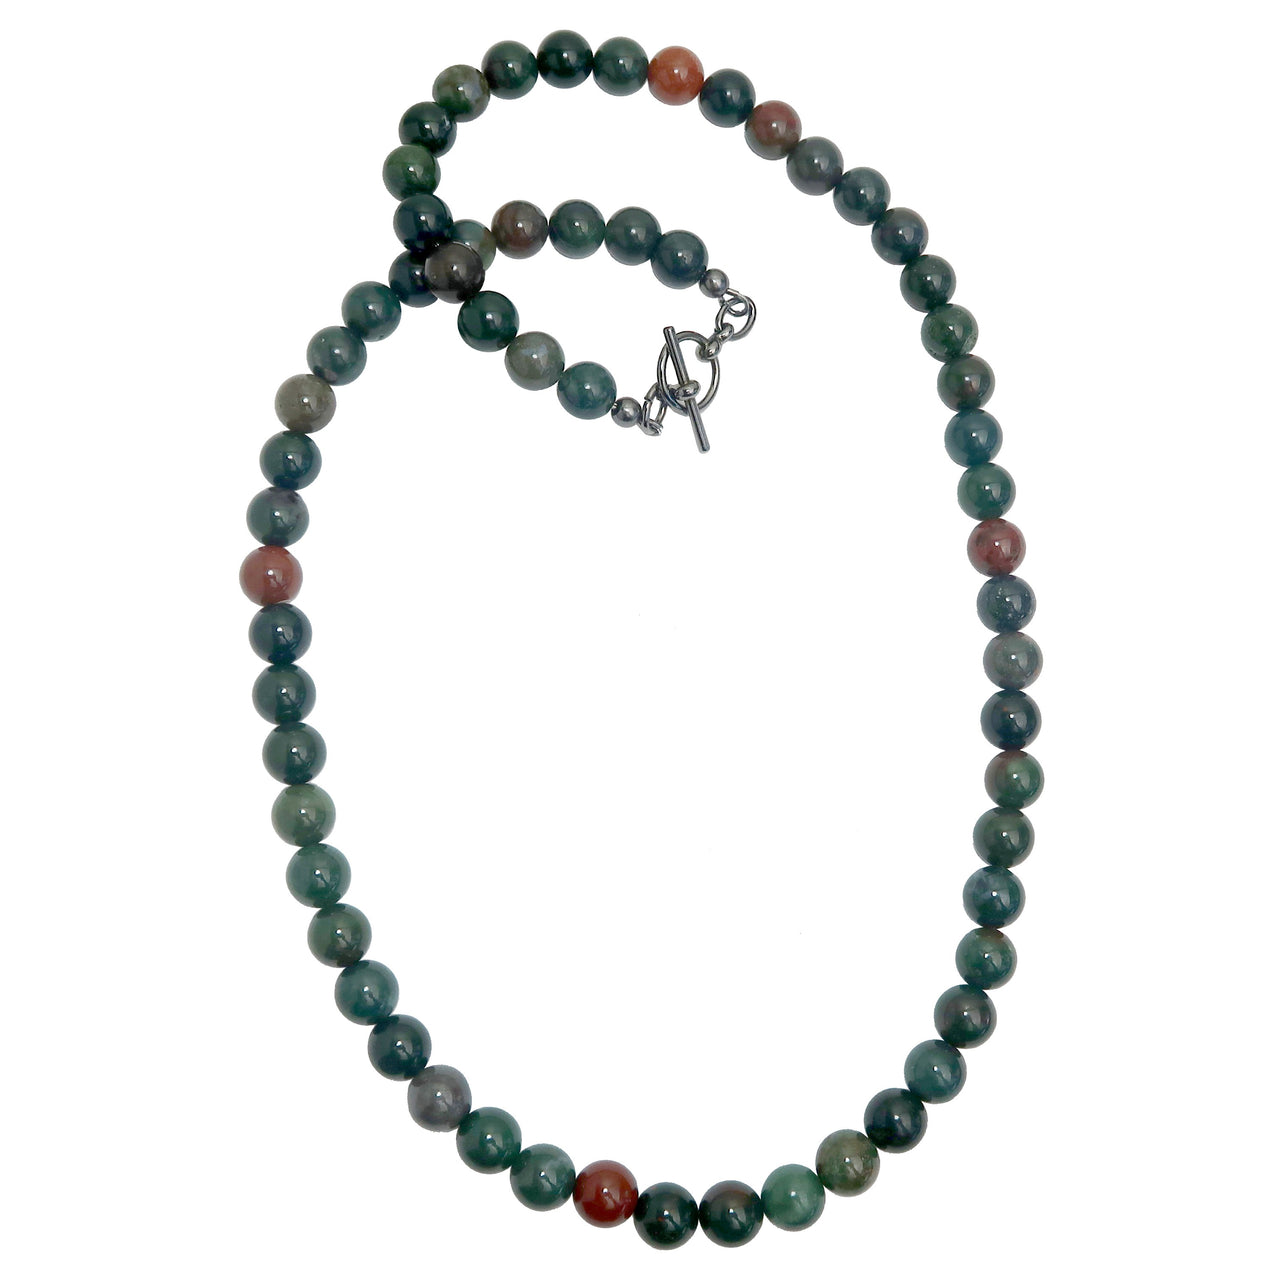 Bloodstone Necklace 7mm Boutique Round Green Gemstone Beaded Smooth Healing B02